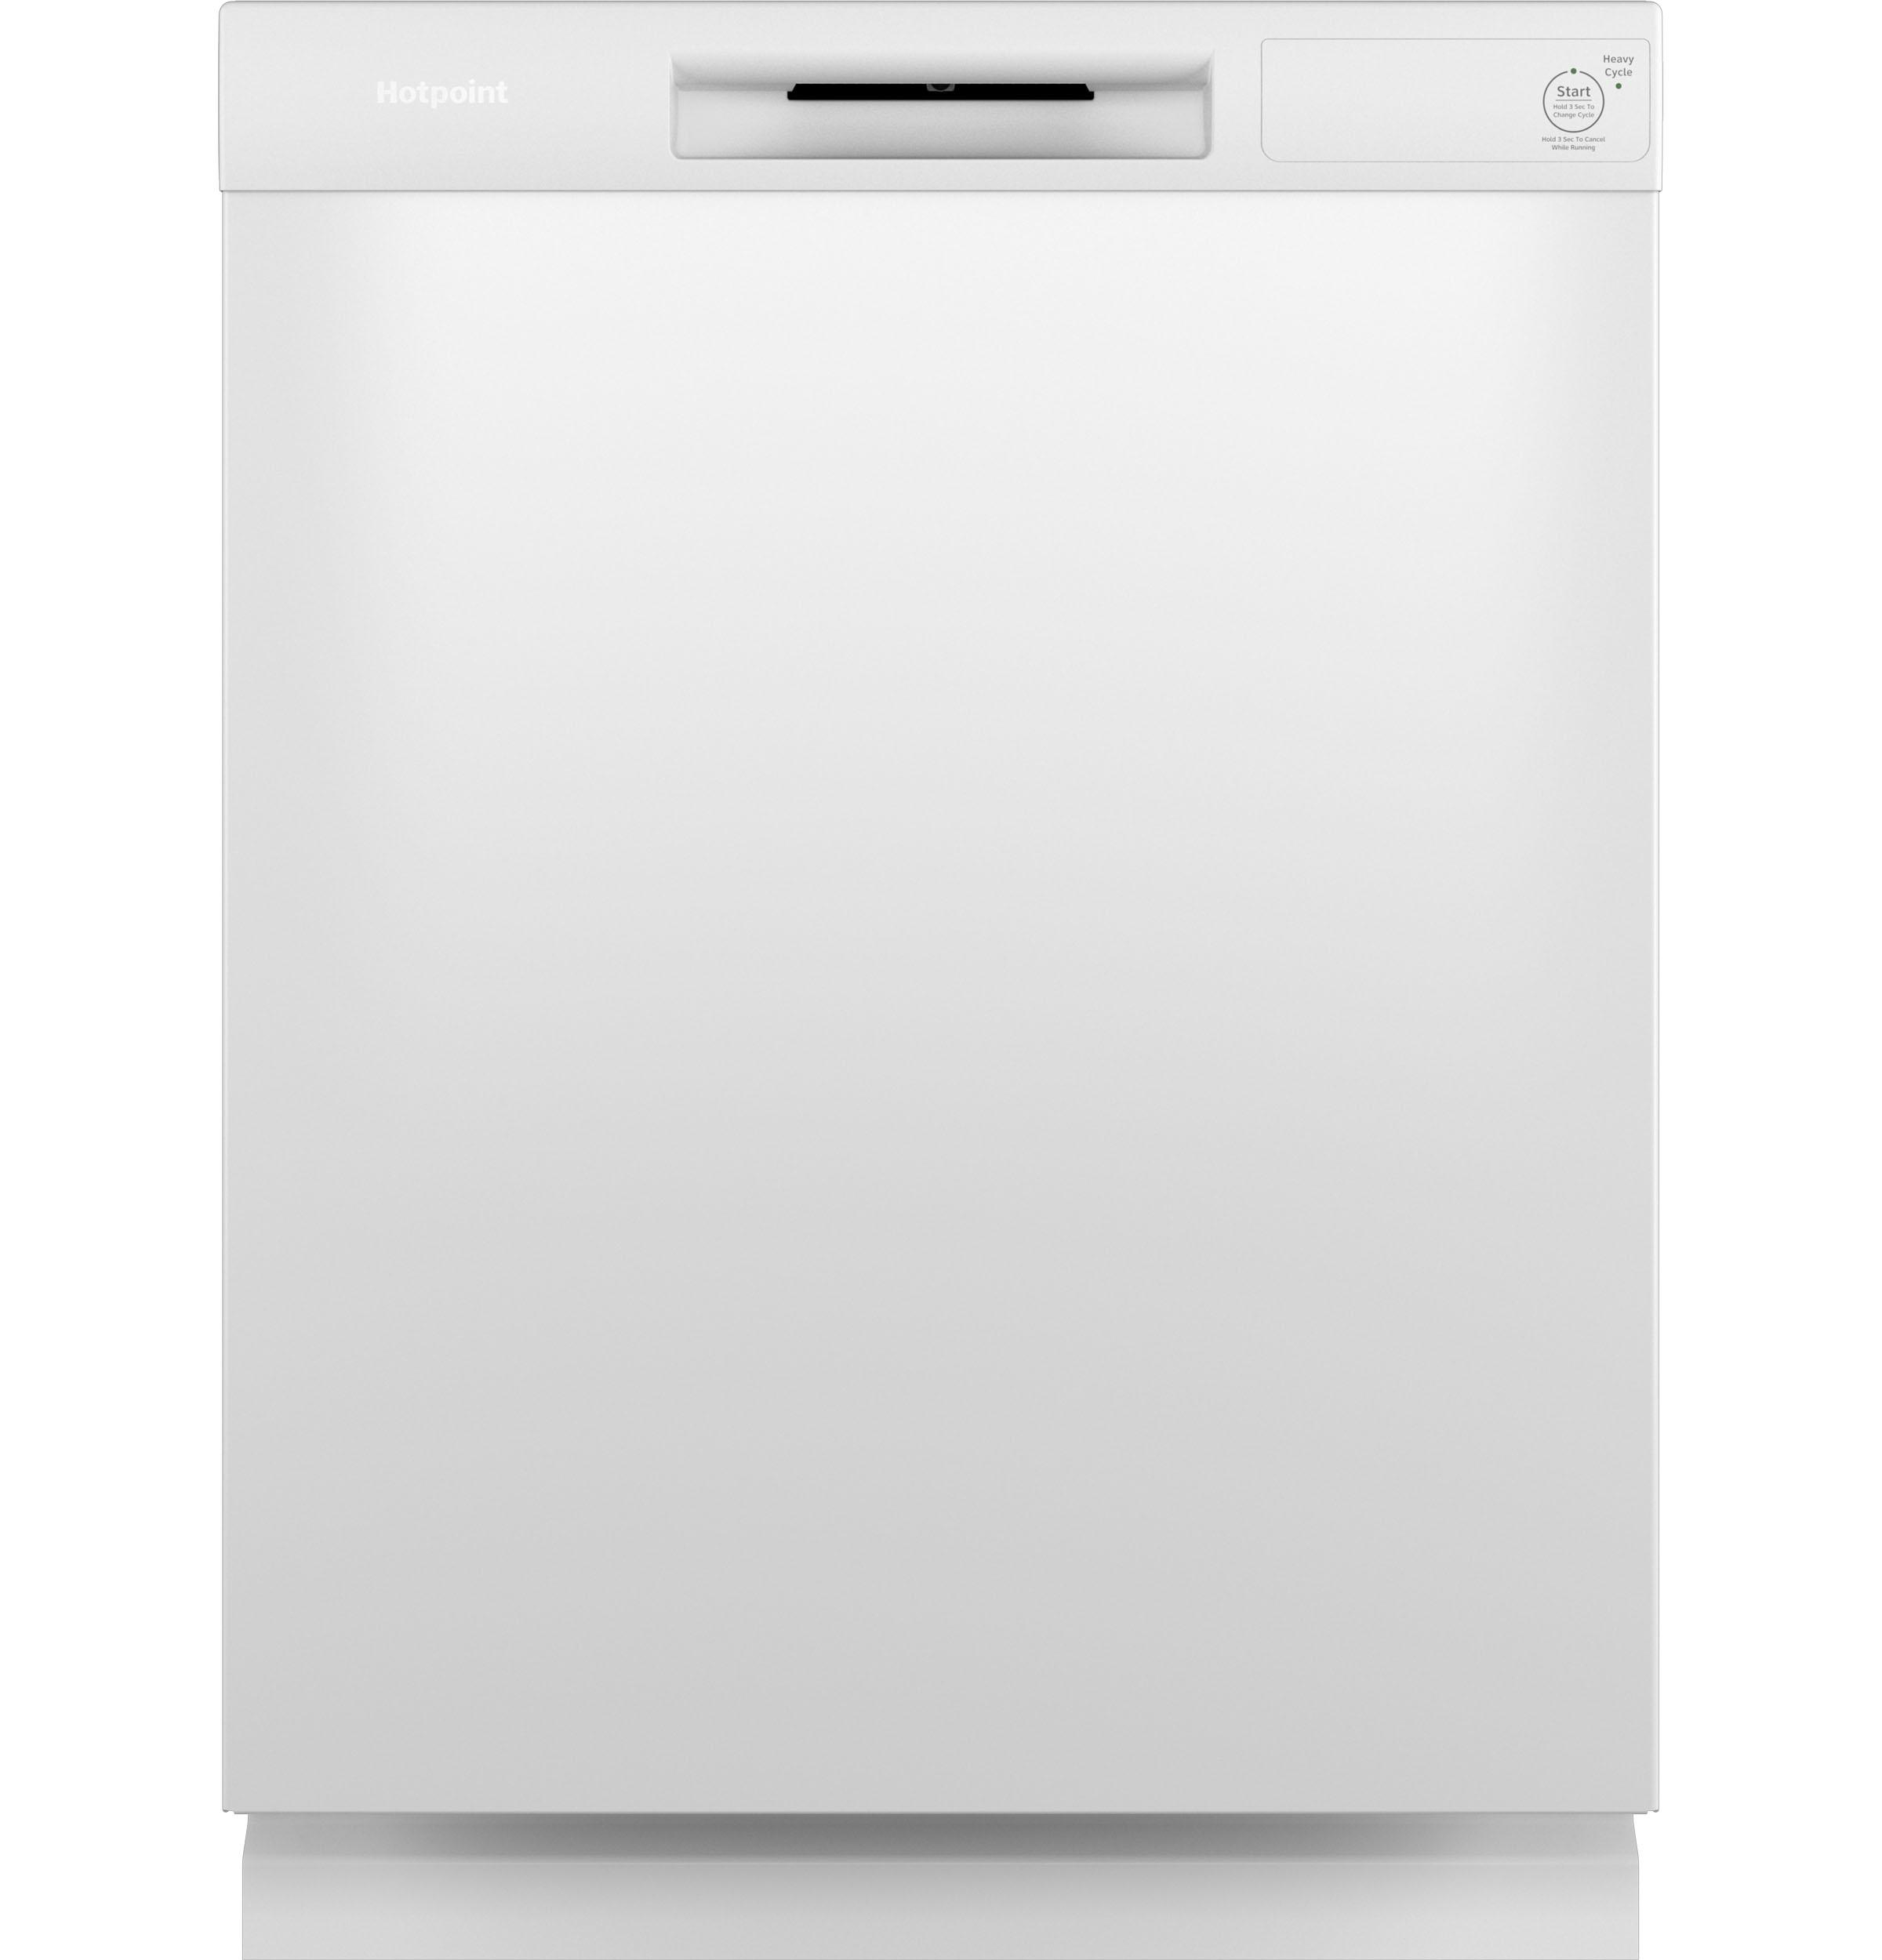 Hotpoint® One Button Dishwasher with Plastic Interior